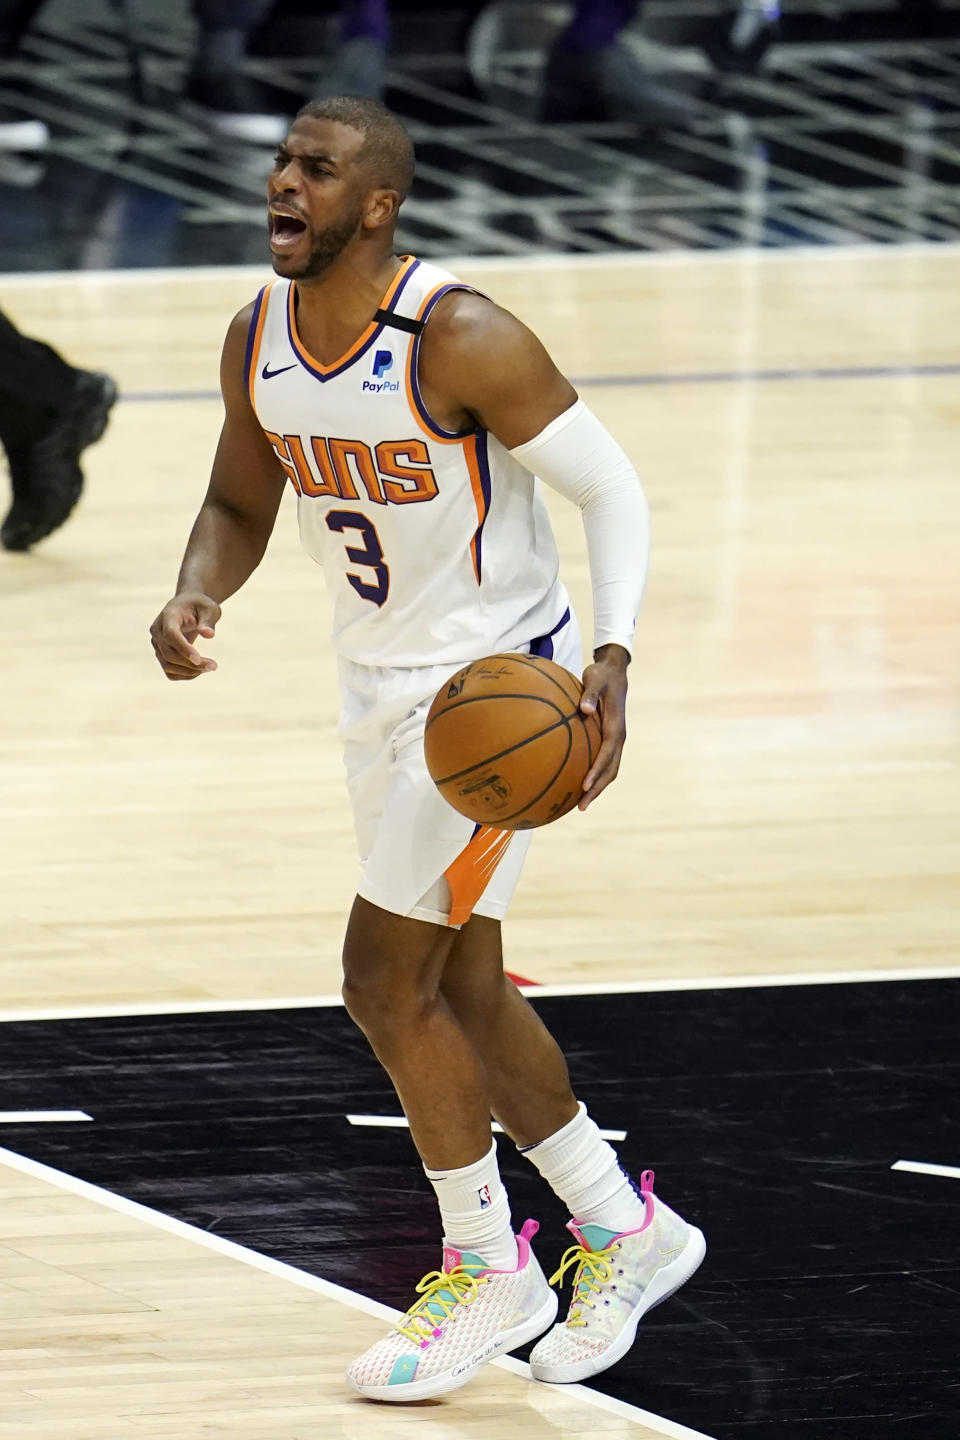 Phoenix Suns guard Chris Paul yells out instructions as he dribbles during the first half of an NBA basketball game against the Los Angeles Clippers Thursday, April 8, 2021, in Los Angeles. (AP Photo/Marcio Jose Sanchez)